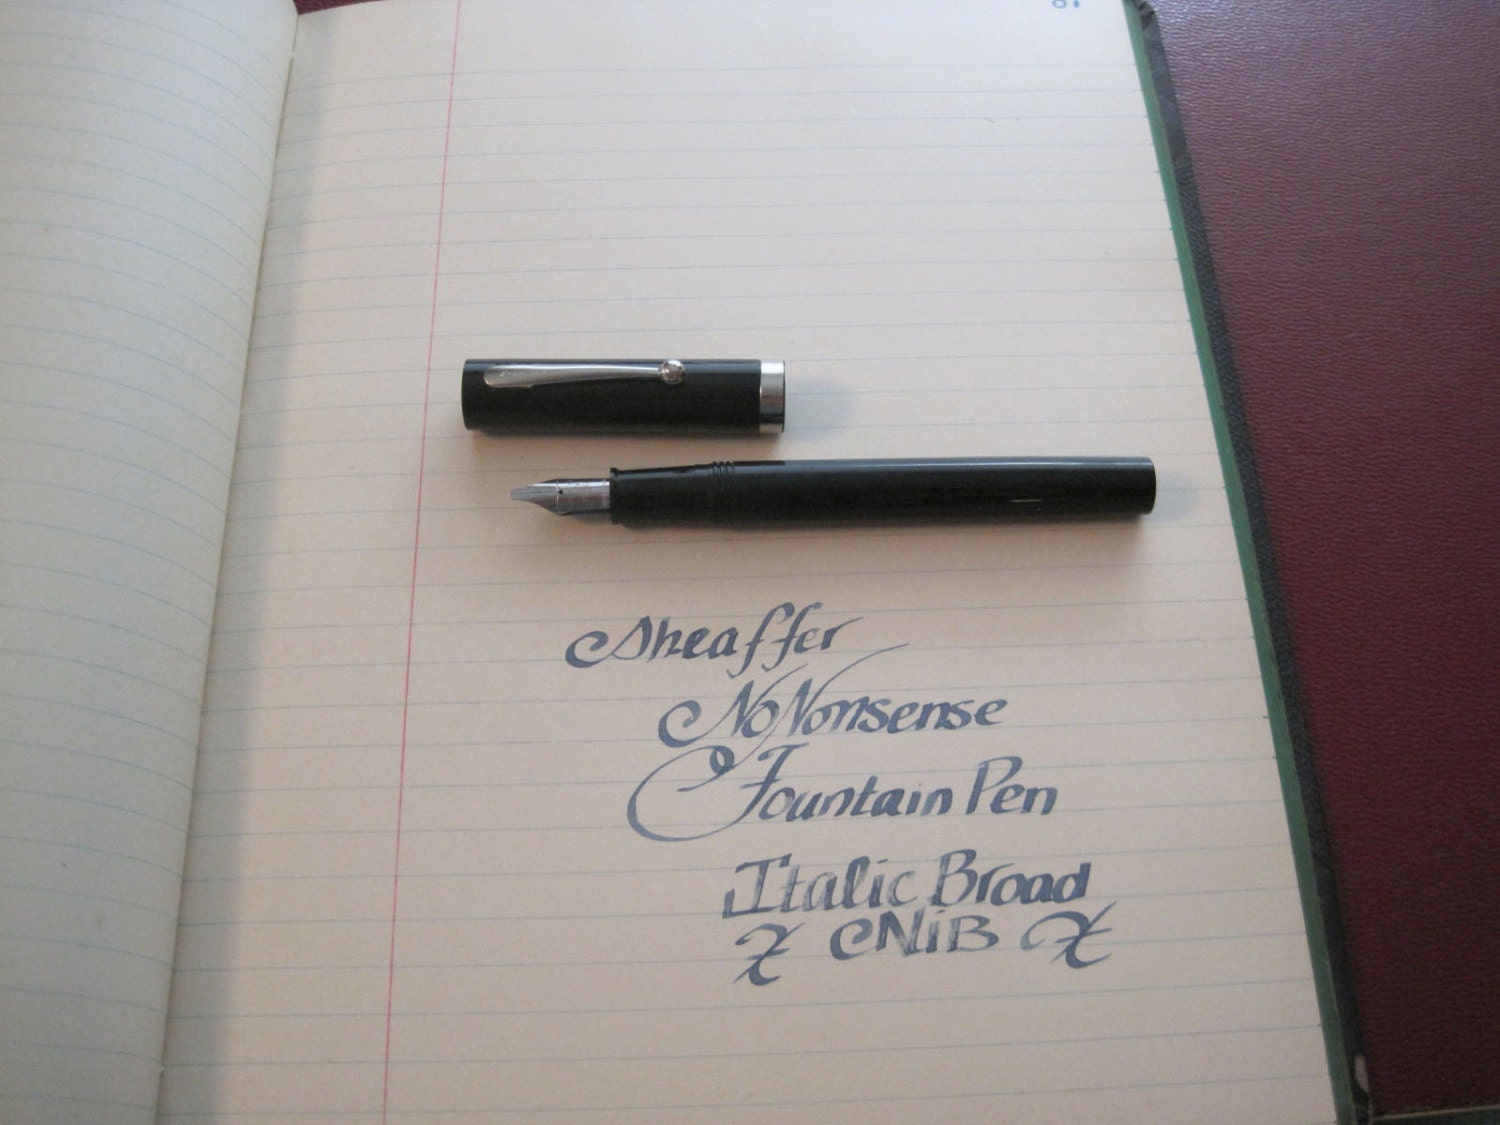 Sheaffer Nononsense Calligraphy Fountain Pen Italic Broad